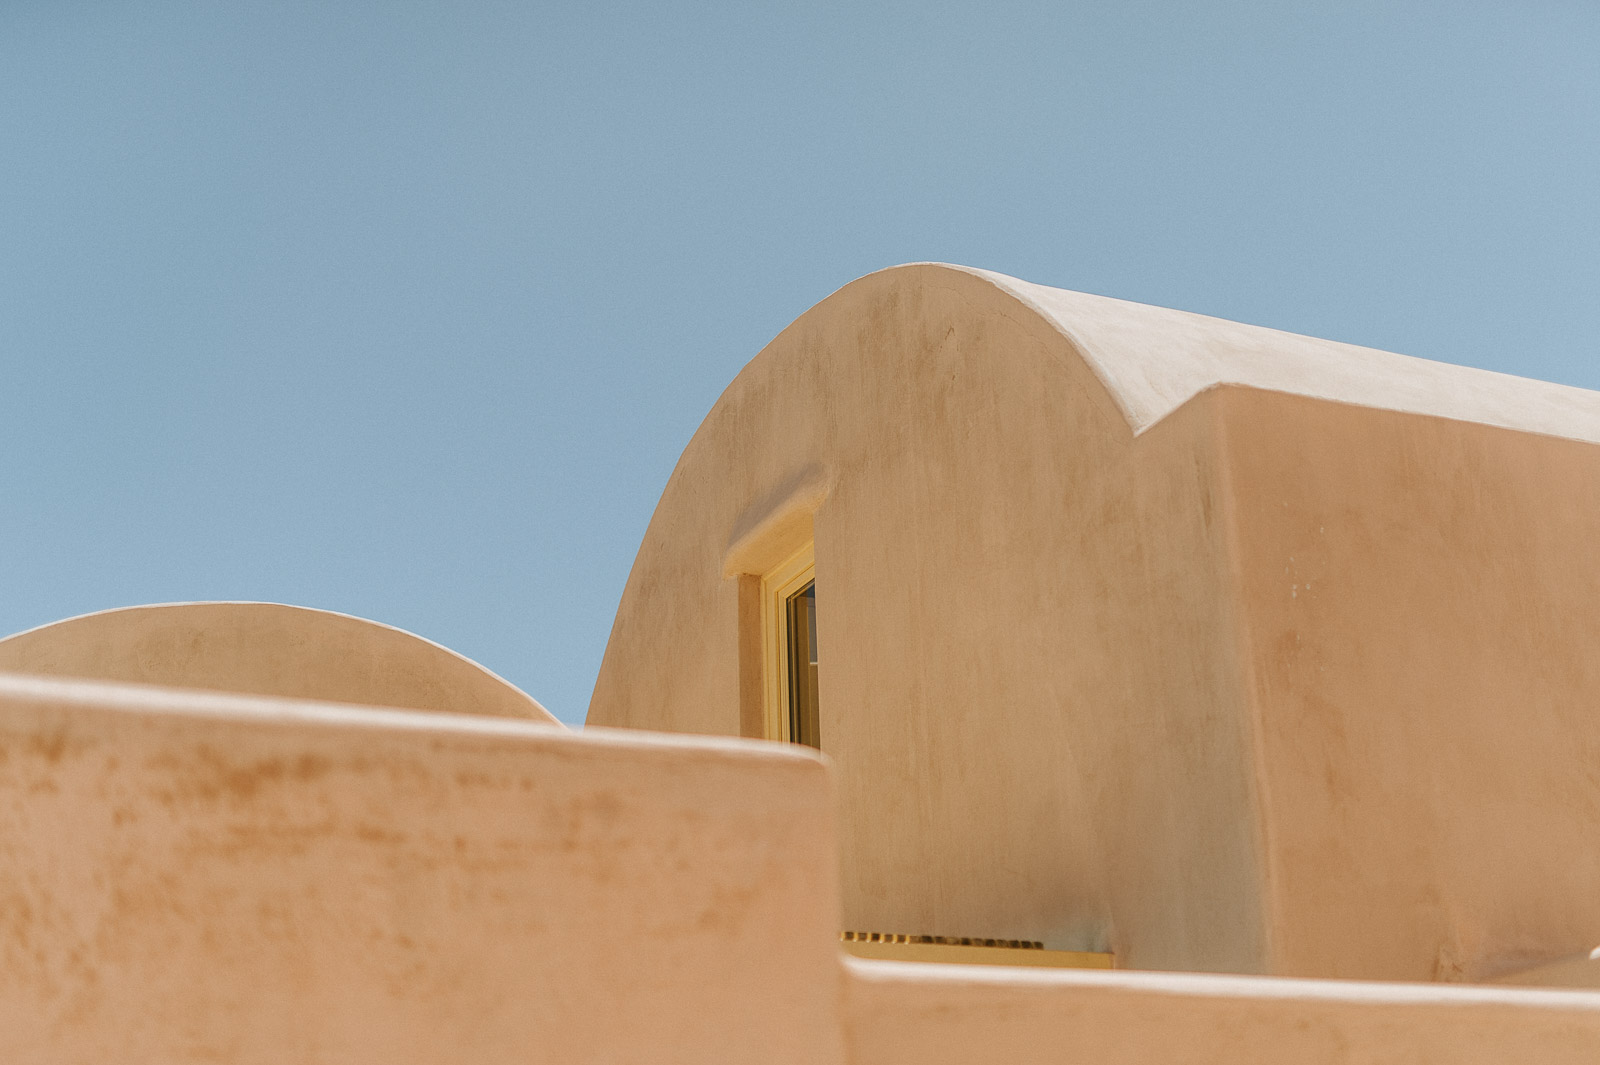 Santorini-Wedding-Photographer-Greece-Destination-Weddings-Mait-Juriado-M&J-Studios-003